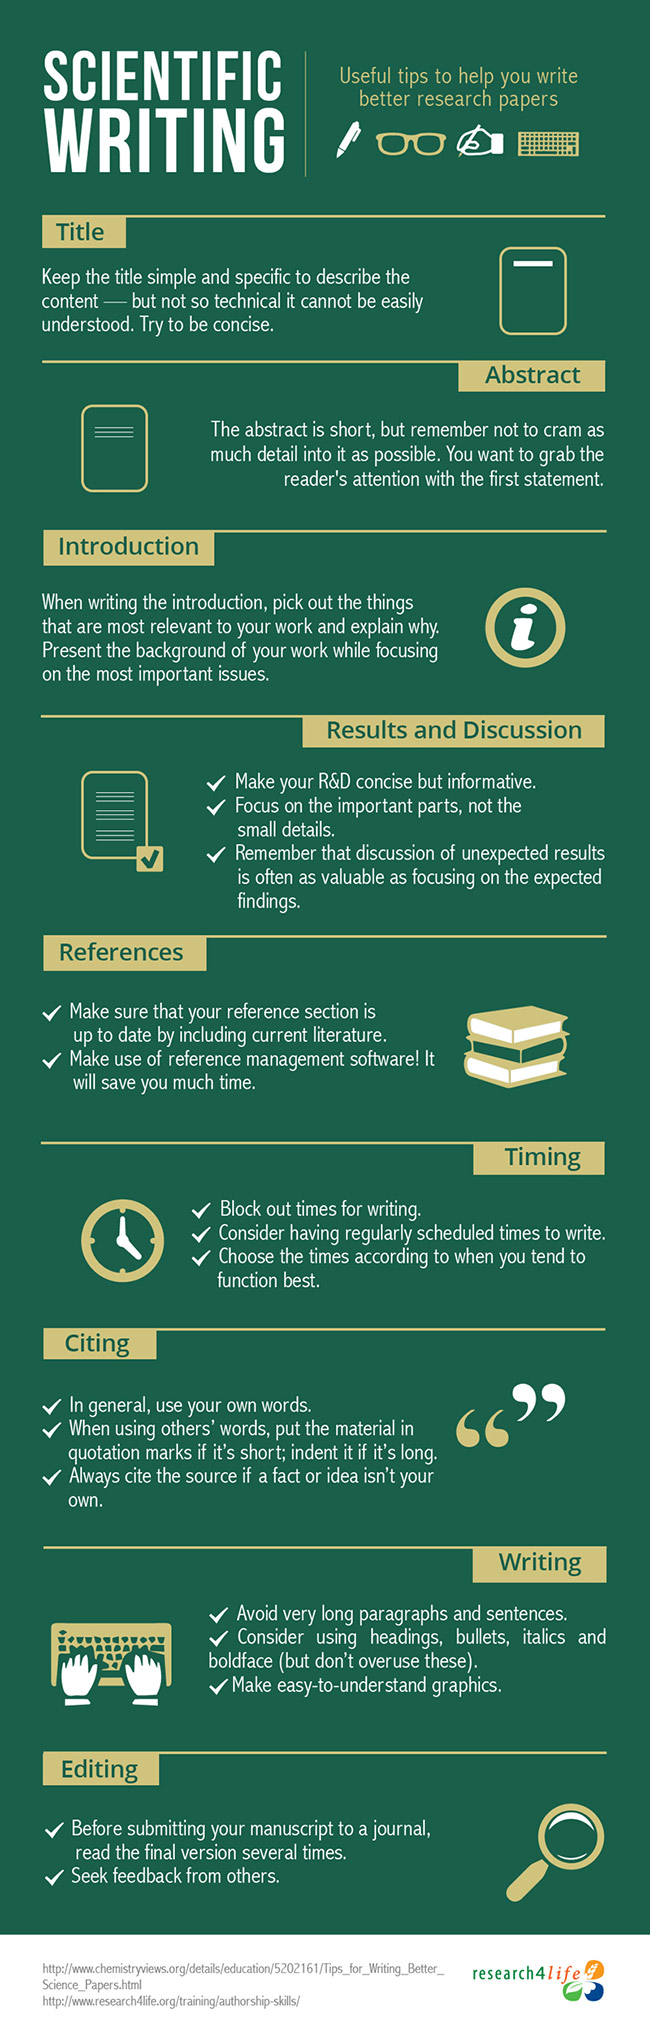 005 Can I Write My Own Research Paper Infographic Science Writing Singular Full